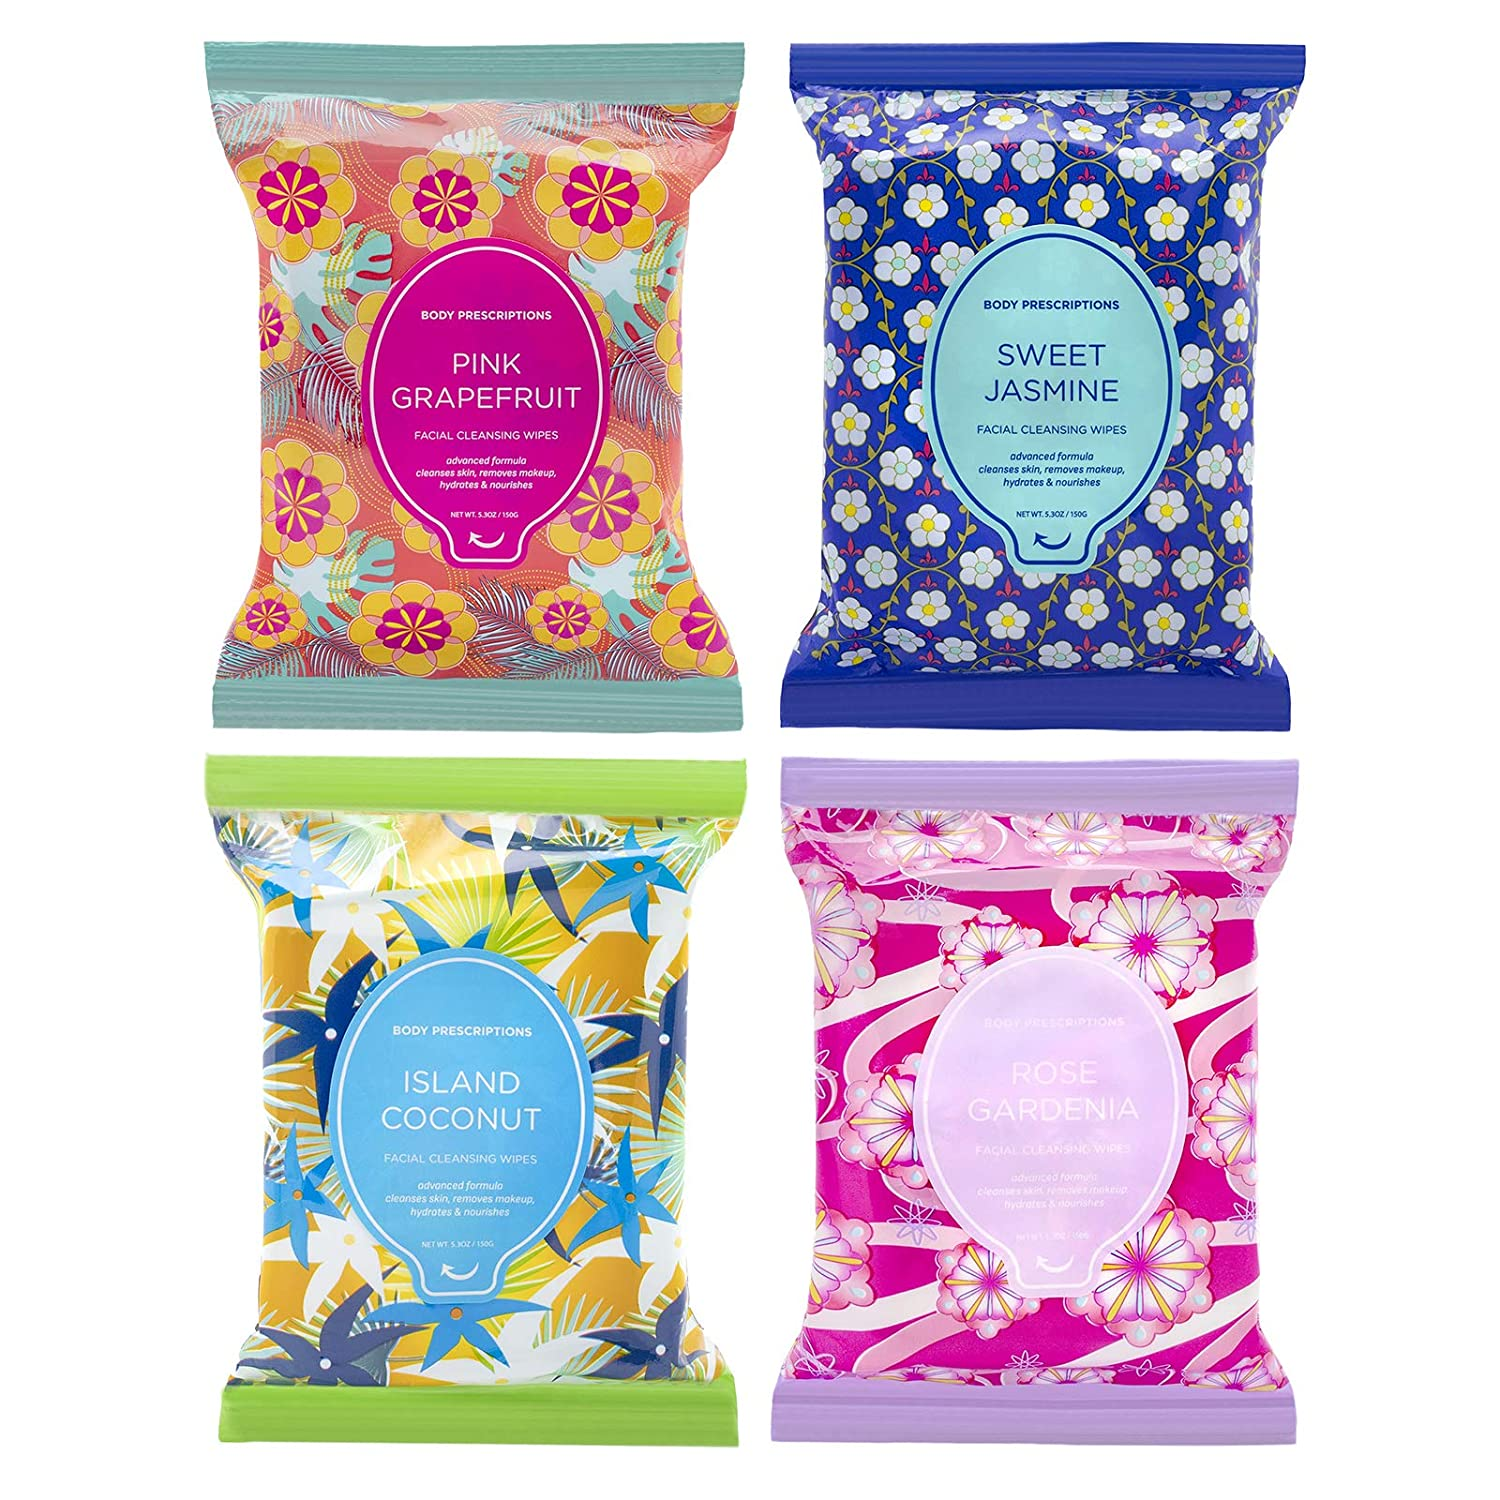 Body Prescriptions Makeup Remover Wipes Bulk, 4 Pack, 120 Facial Cleansing Cloths Removes Makeup, Mascara, Dirt and Oil (Sweet Jasmine, Rose Gardenia, Pink Grapefruit, Island Coconut)